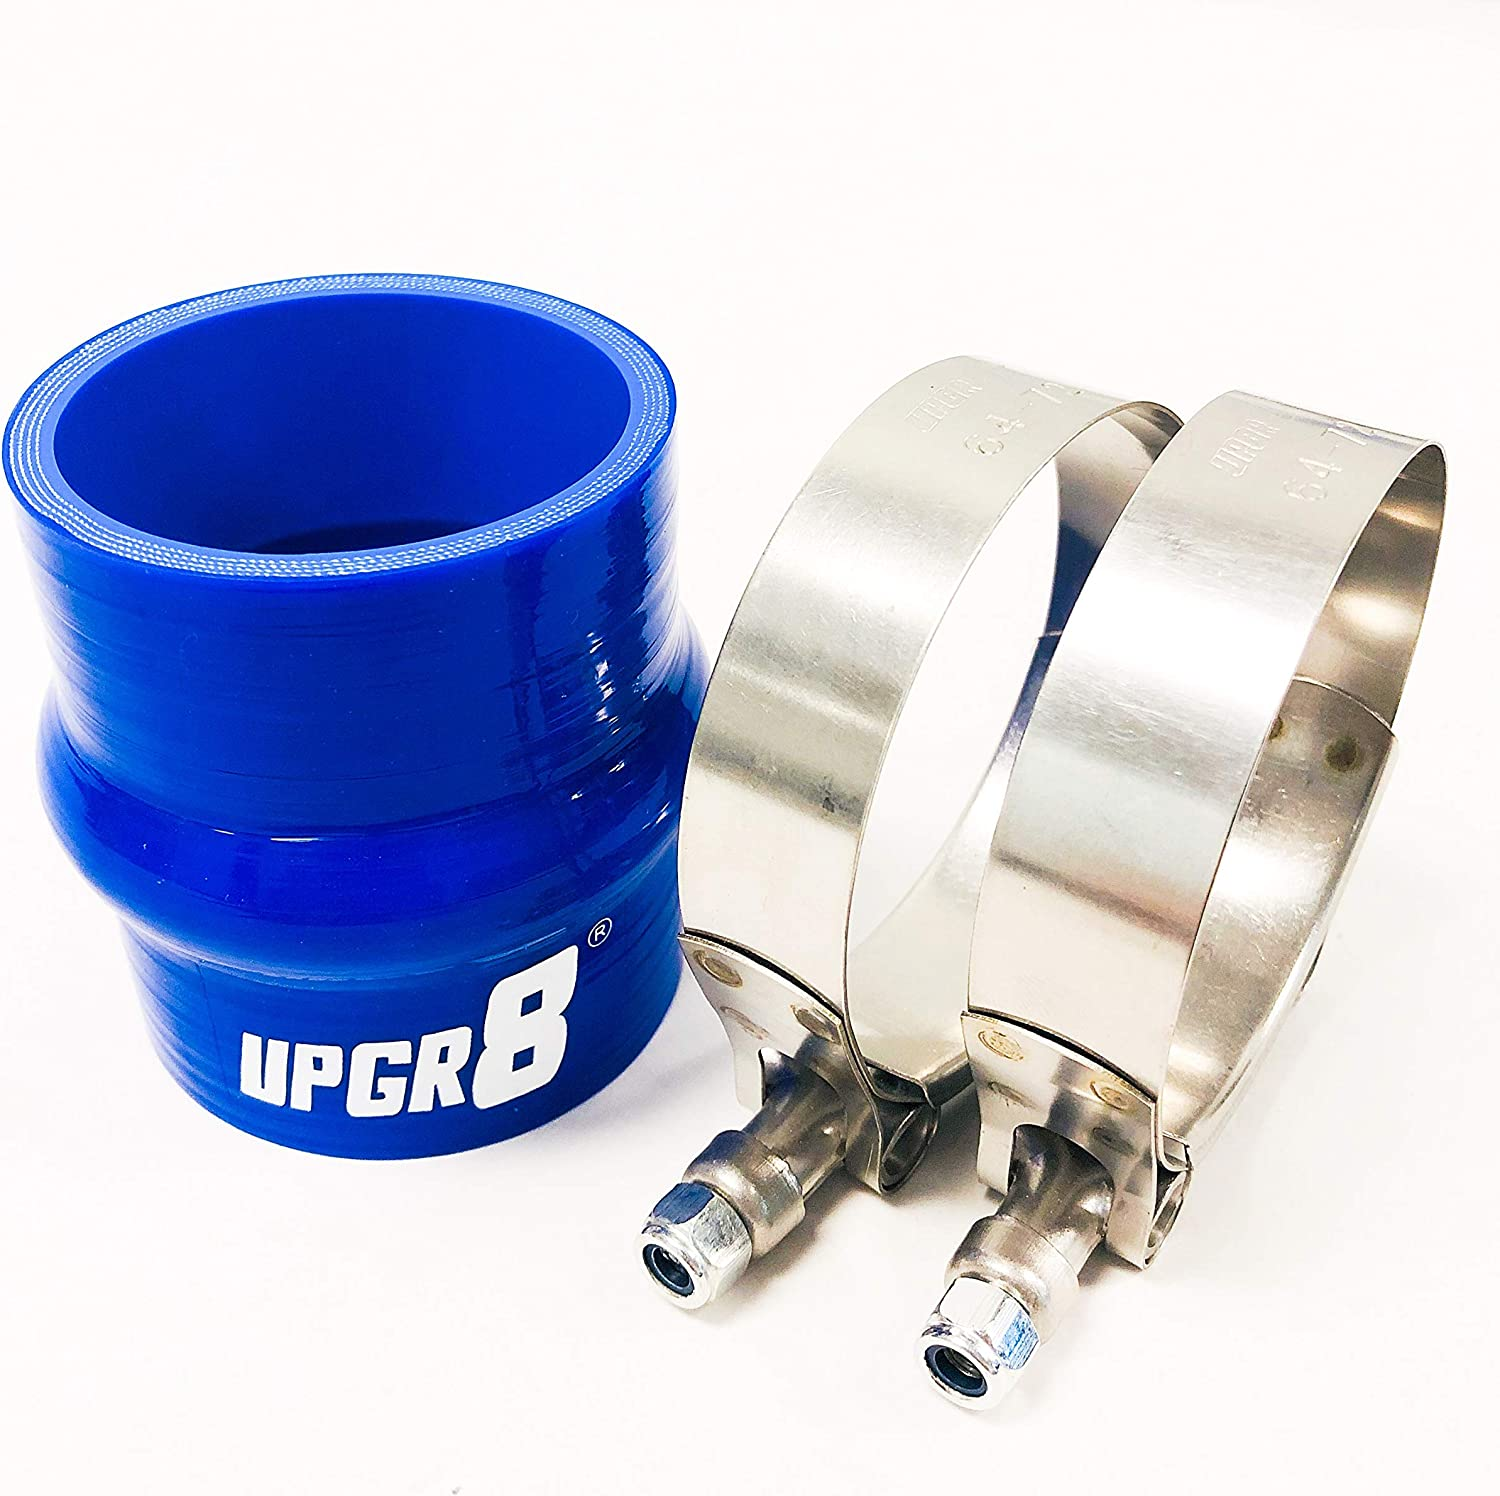 Upgr8 Universal 4-Ply High Performance 2 Straight Hump Coupler Silicone Hose 51mm 2 Black T Bolt Clamp